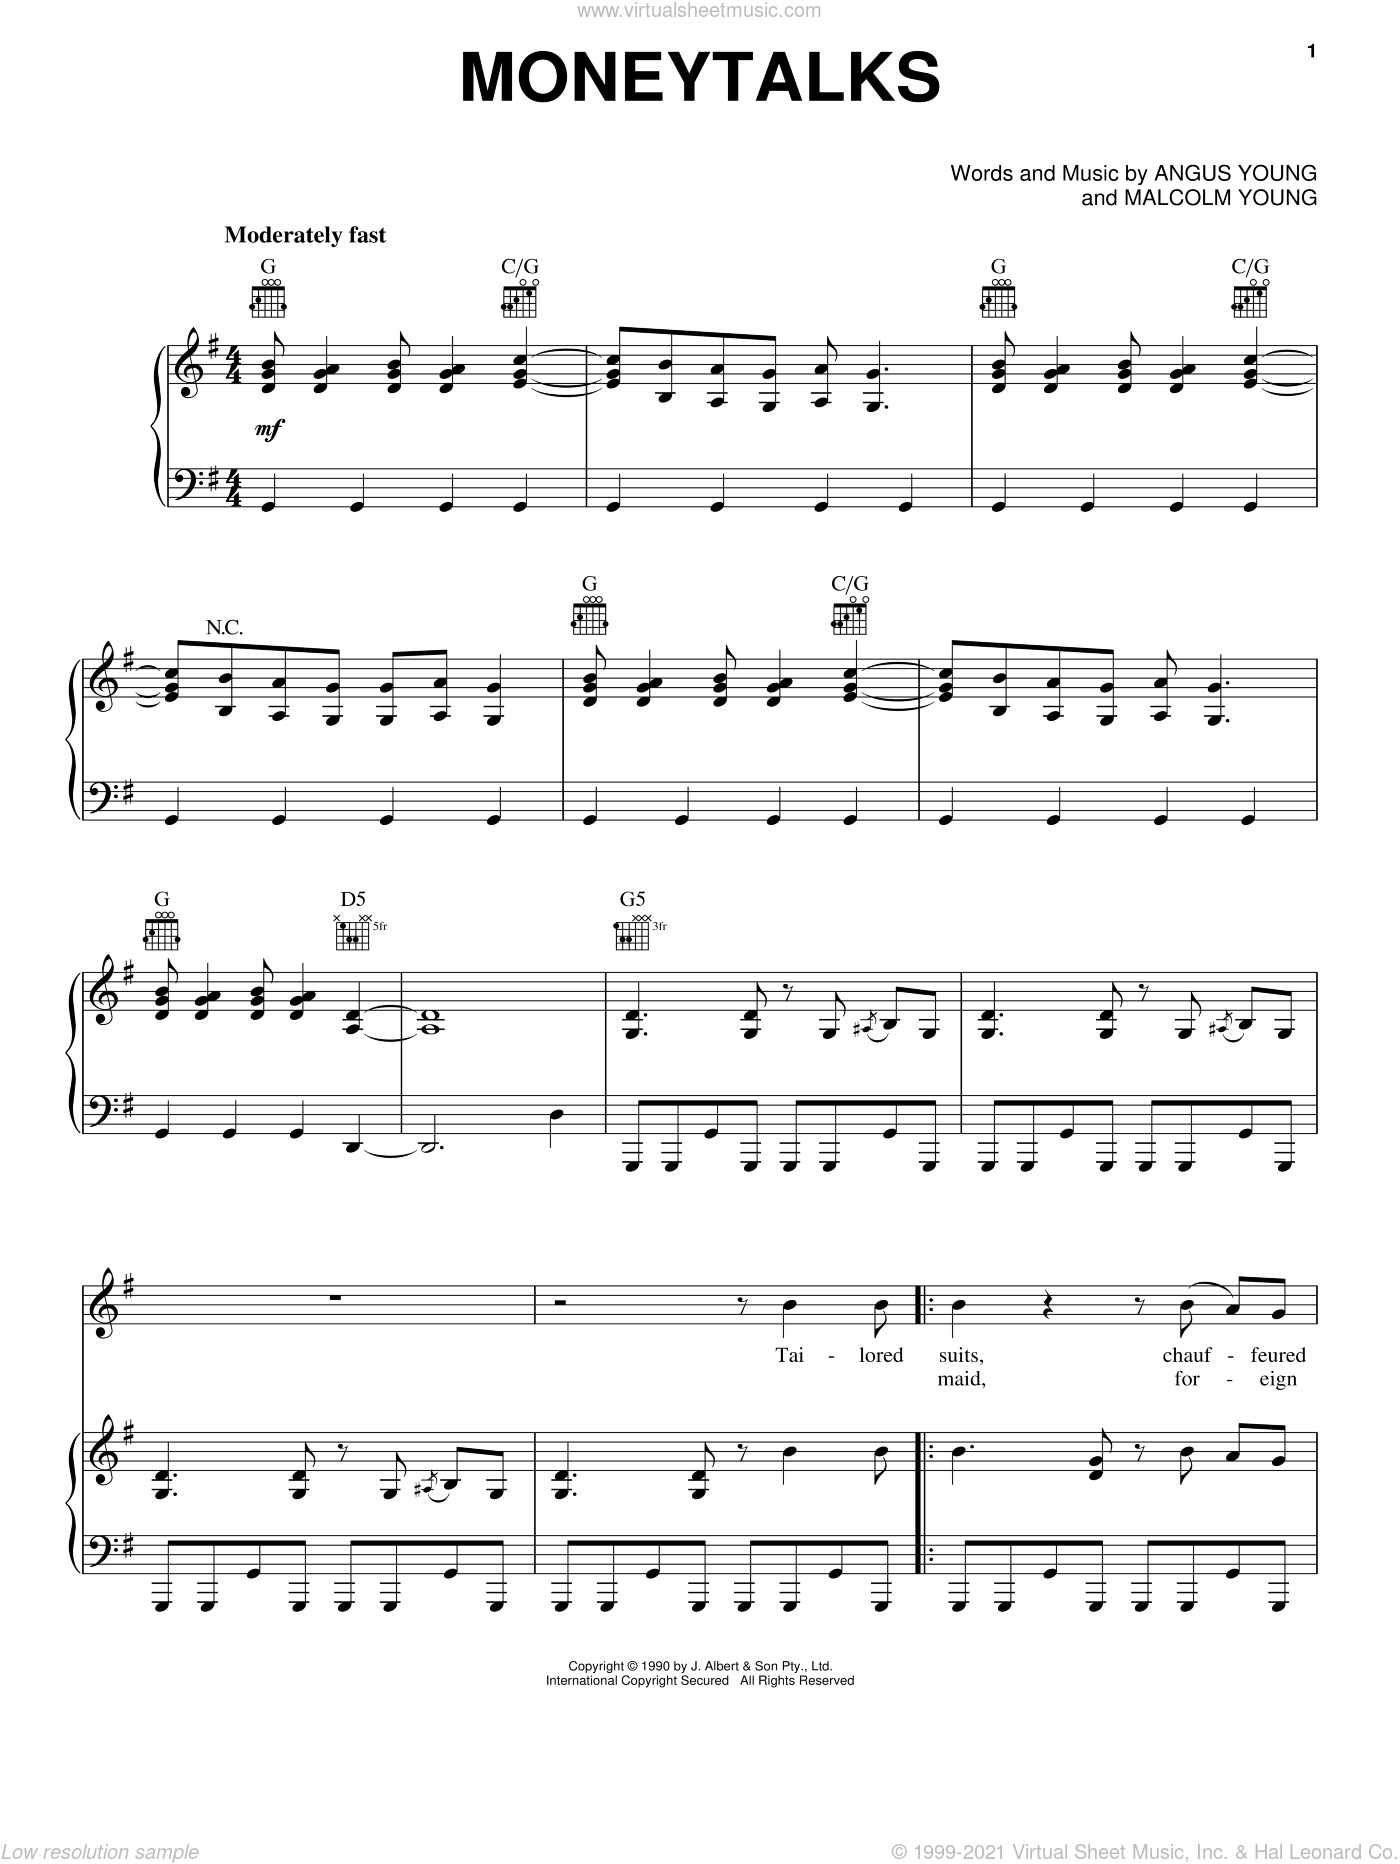 Moneytalks sheet music for voice, piano or guitar by Malcolm Young